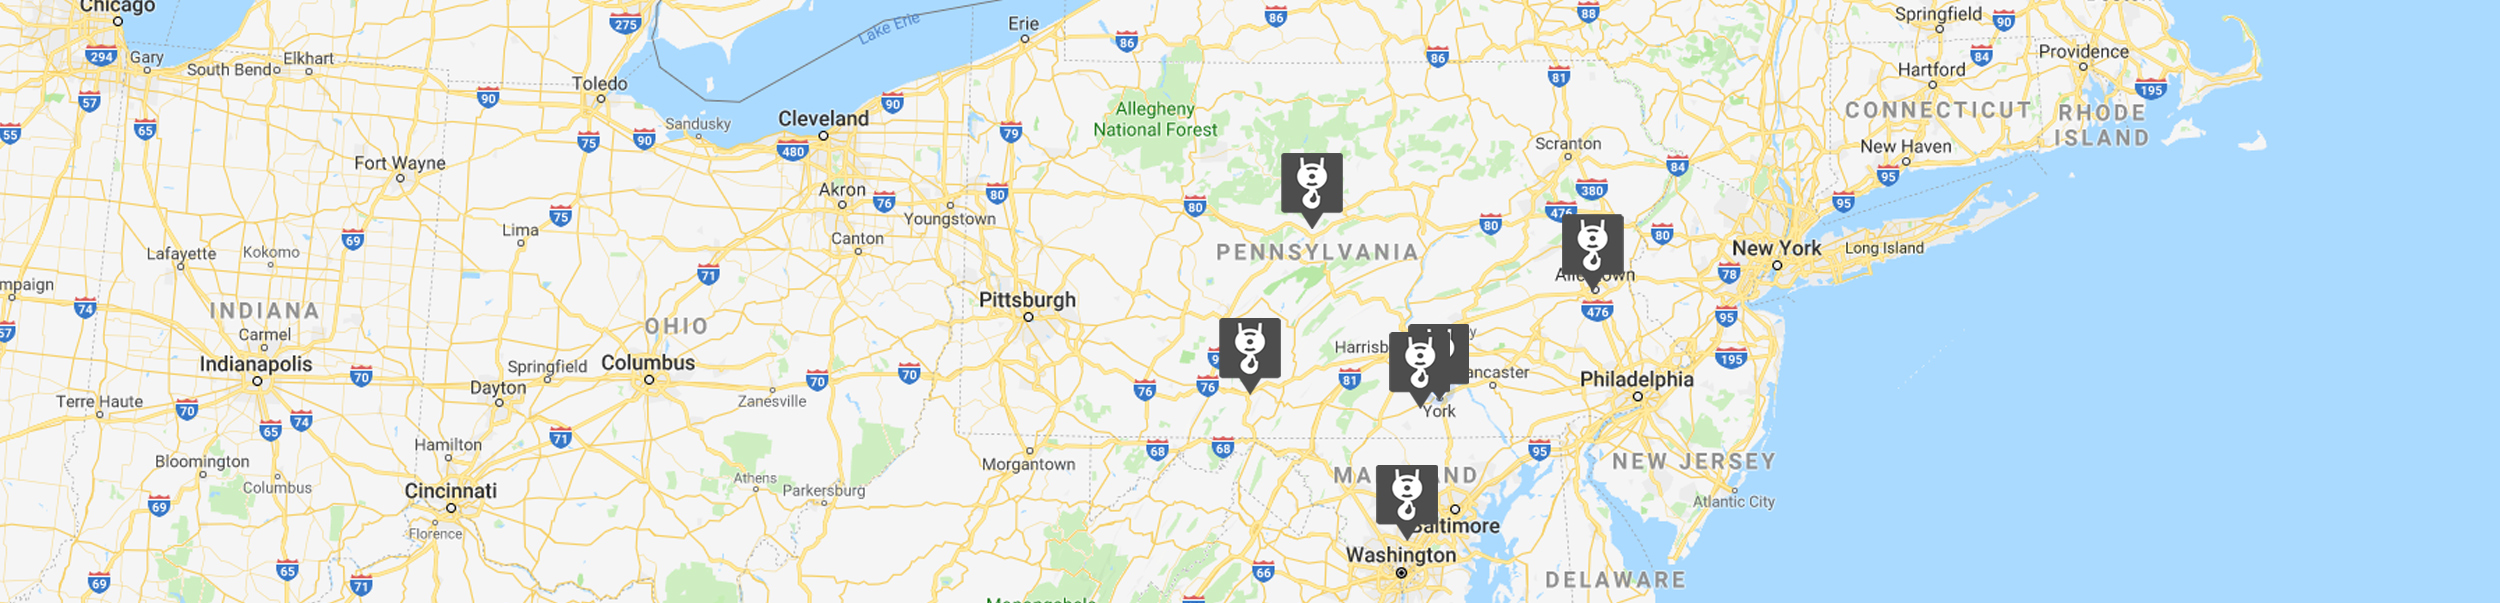 Map Of All Yorkhoist Locations